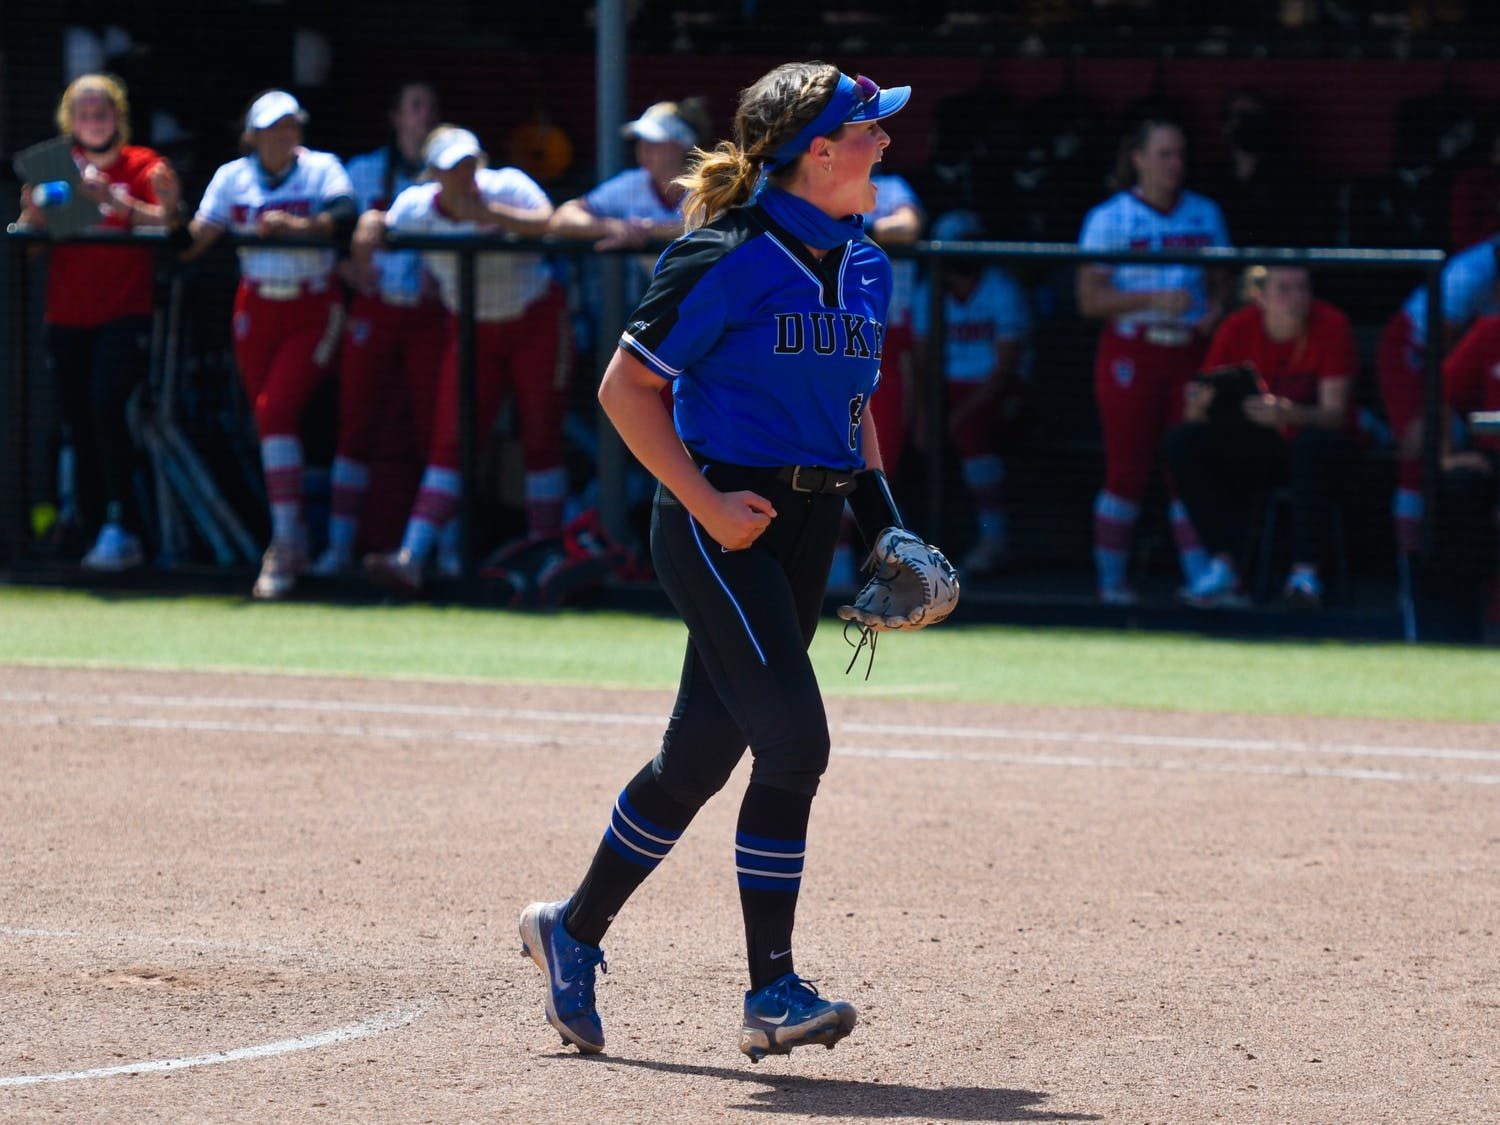 Shelby Walters pitched 10.1 scoreless innings against the Wolfpack.